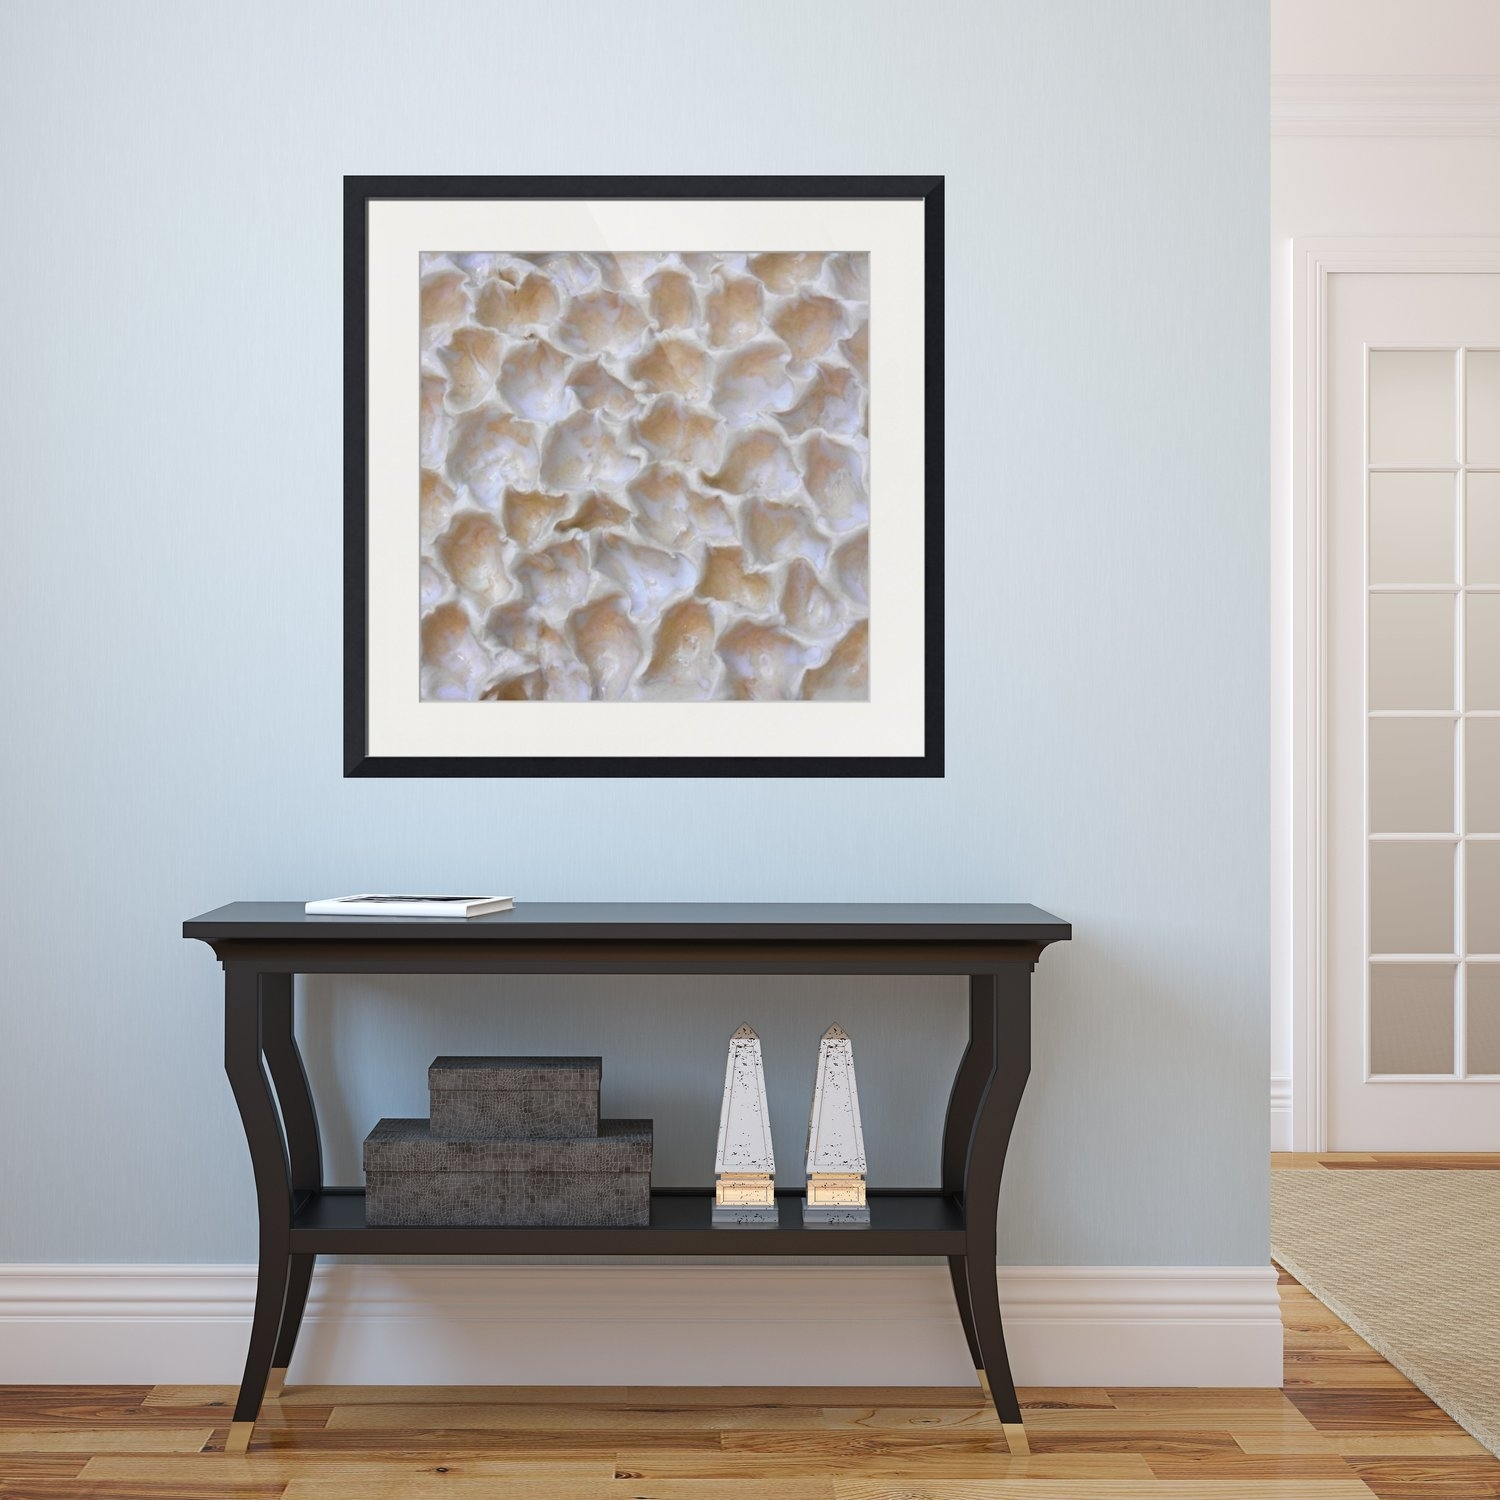 Abstract Framed Wall Art – Square #1 | Abstract Canvas, Modern Intended For 2017 Contemporary Framed Art Prints (View 13 of 15)